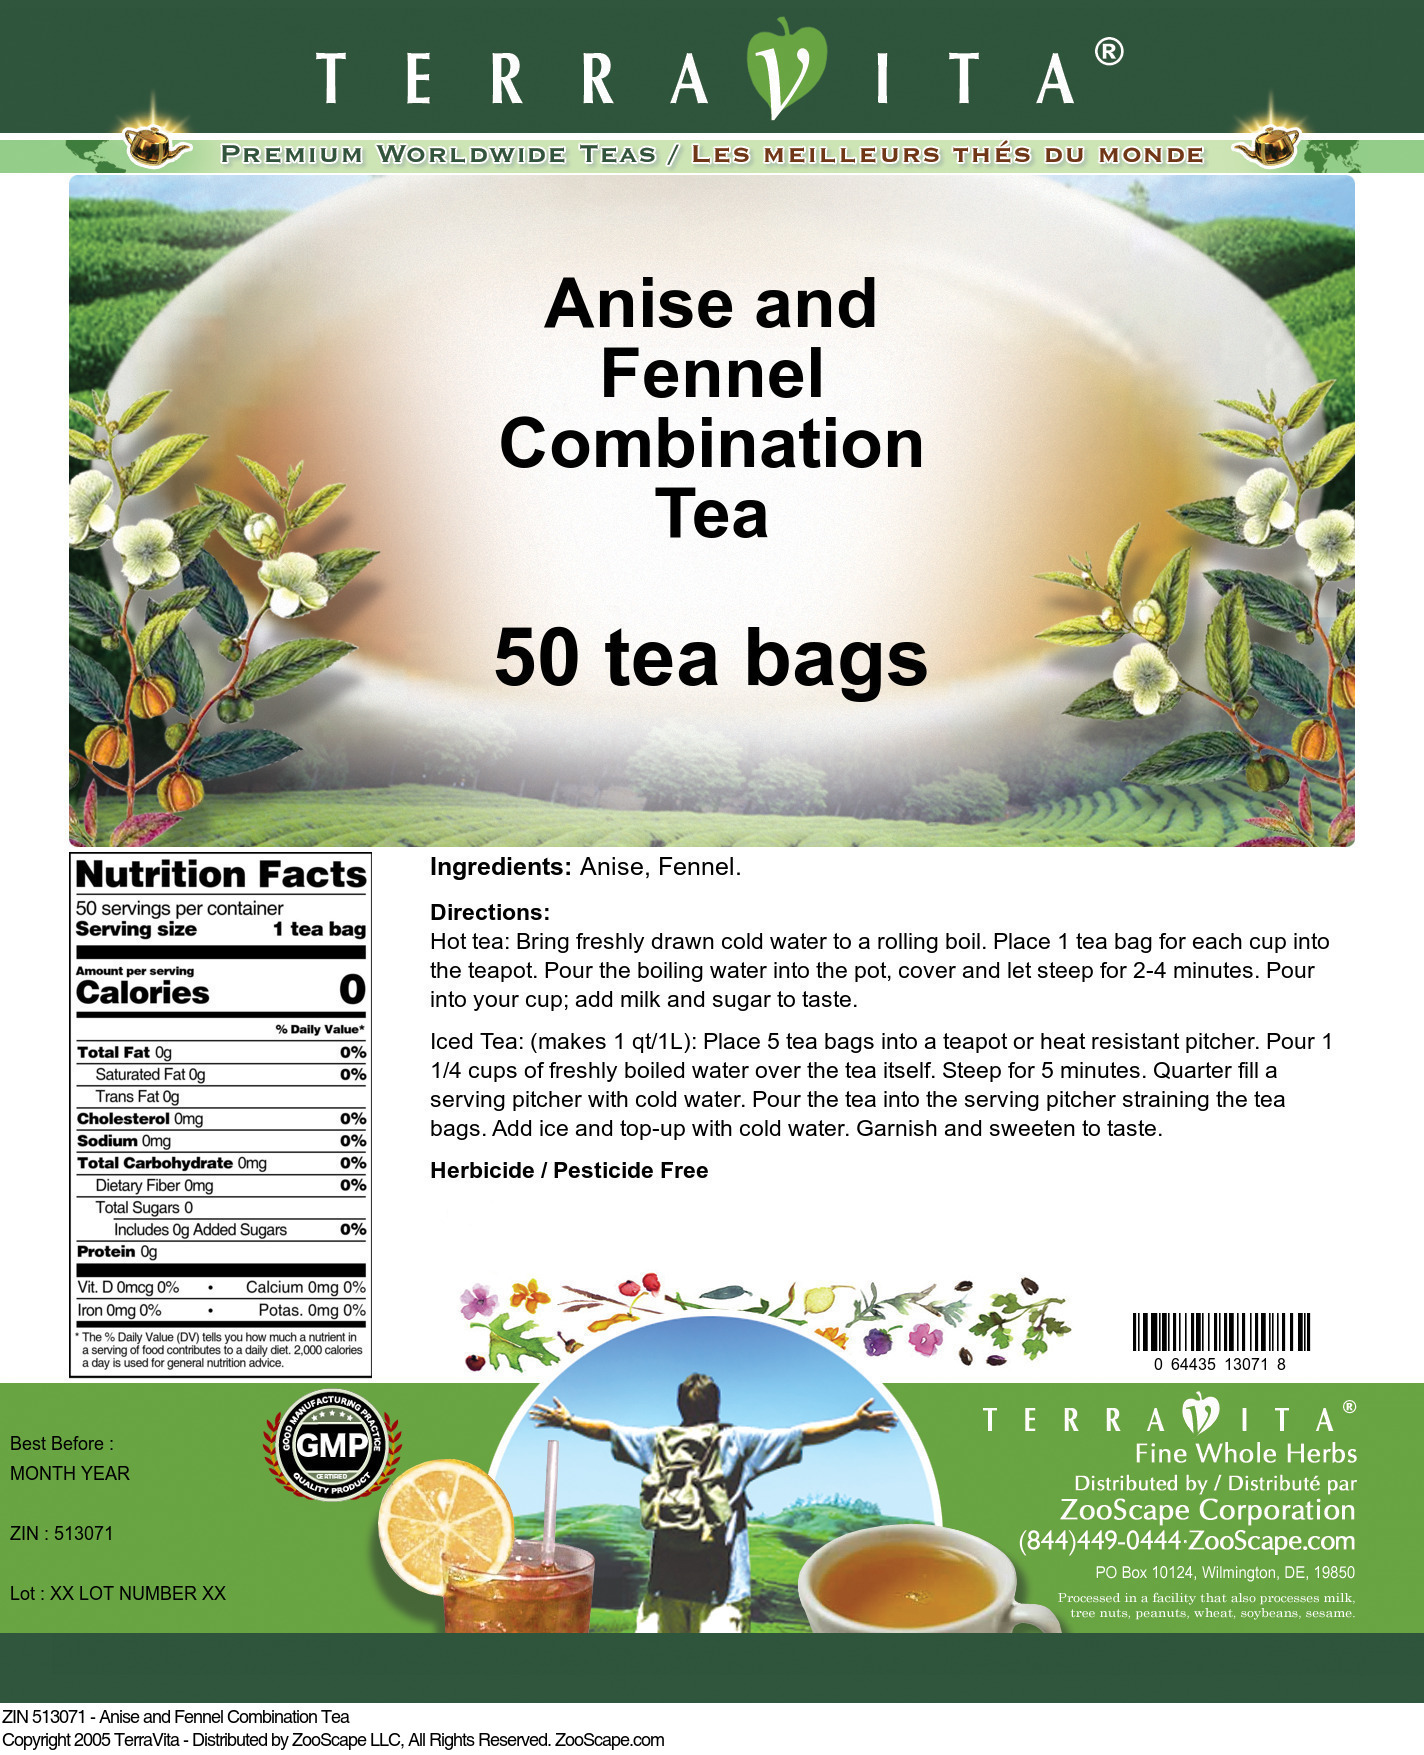 Anise and Fennel Combination Tea